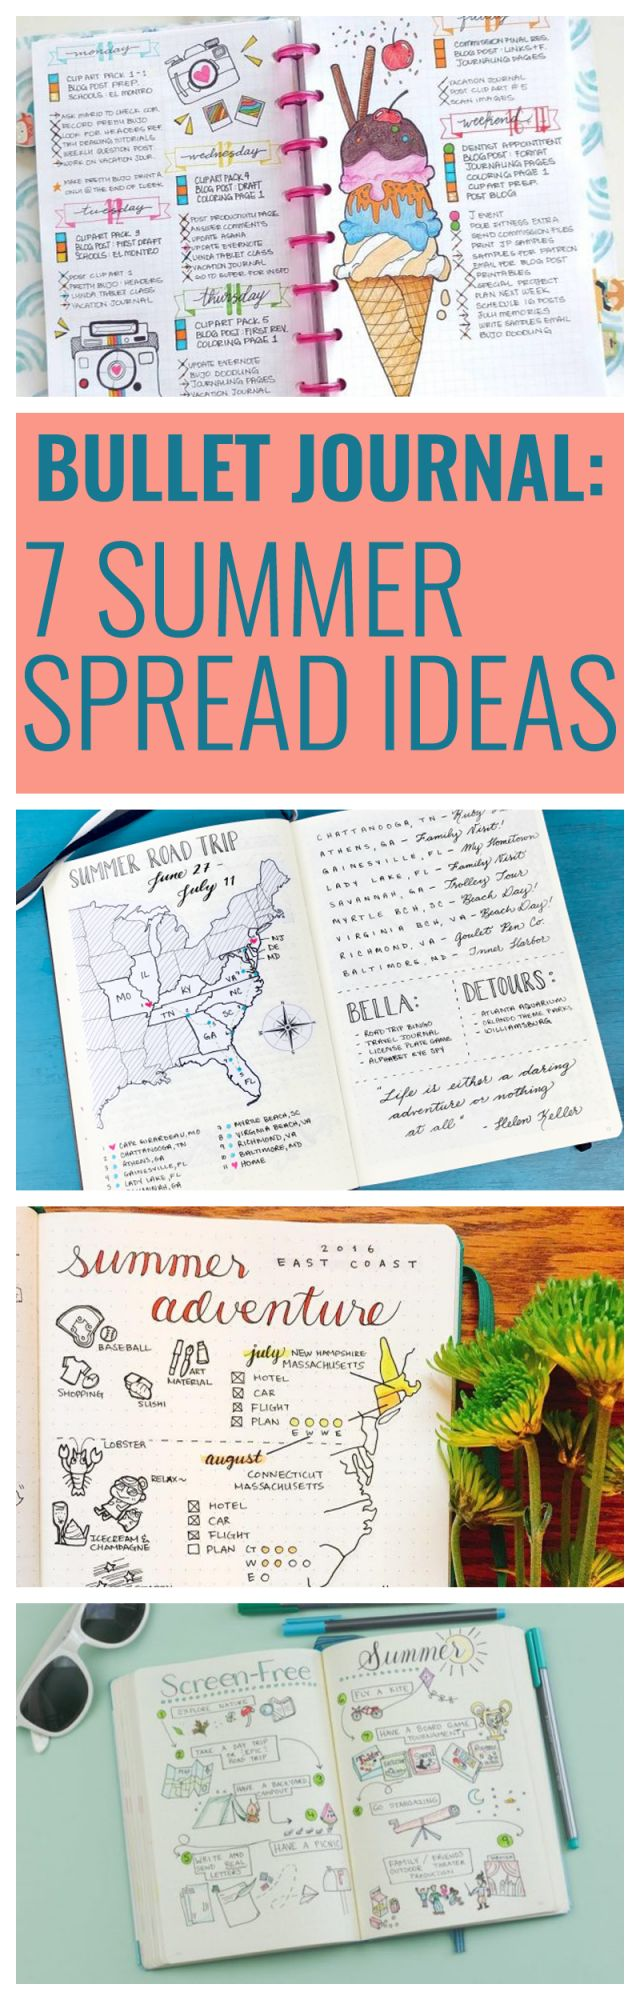 7 Summer Spread Ideas for Bullet Journals